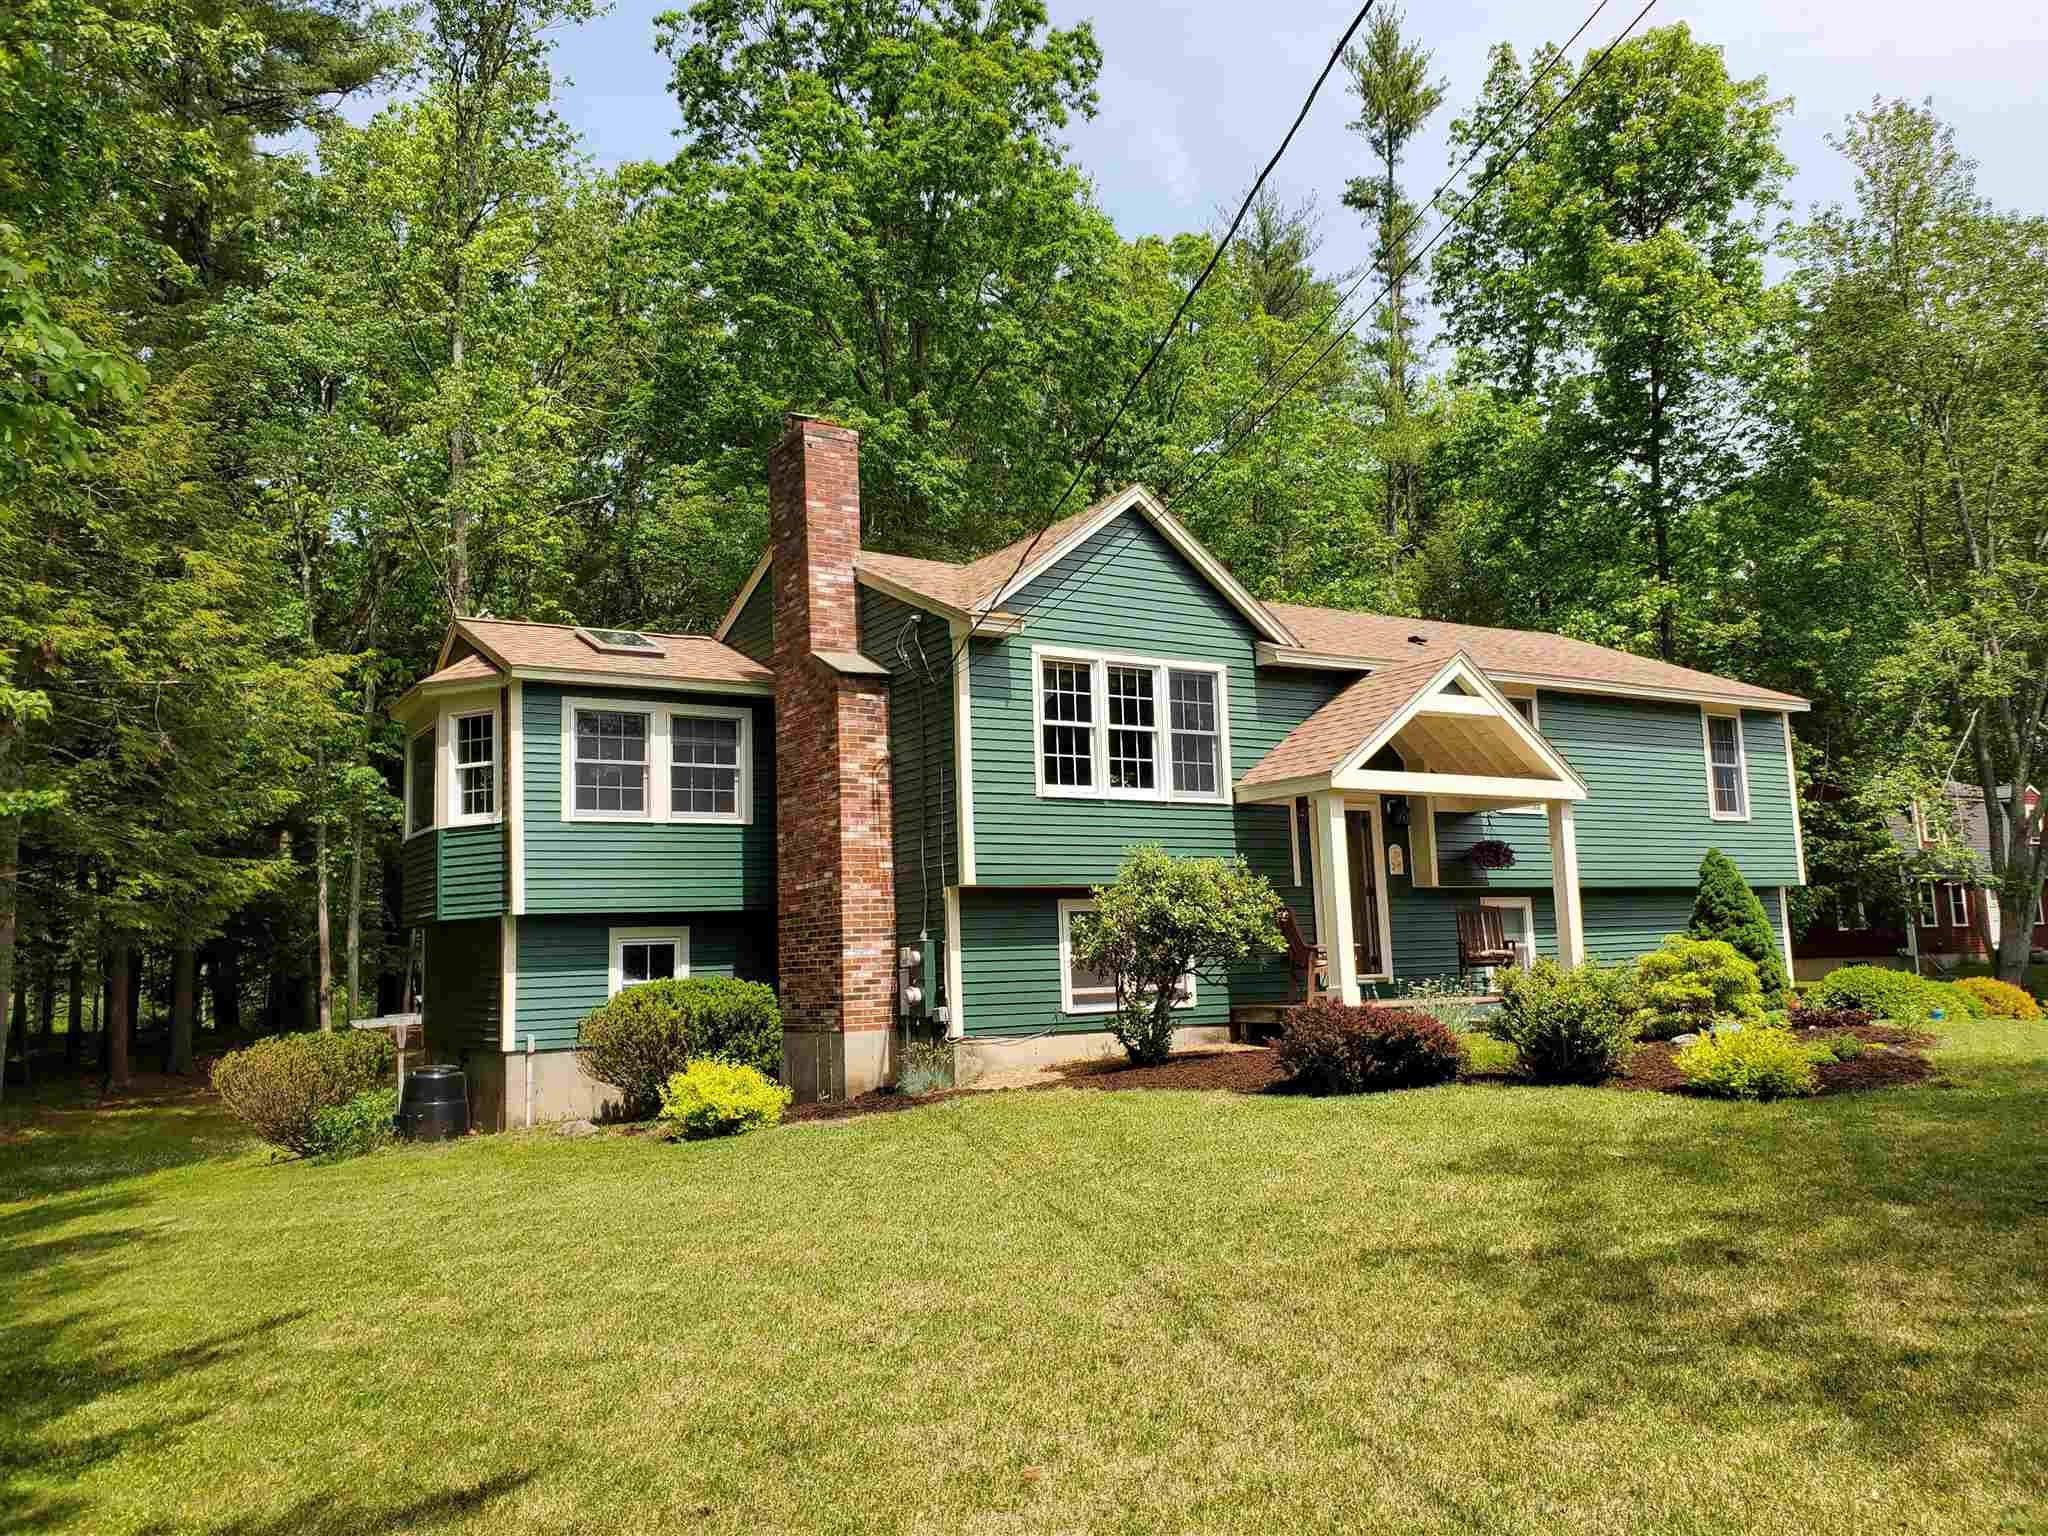 Photo of 18 Riverbend Road Newmarket NH 03857